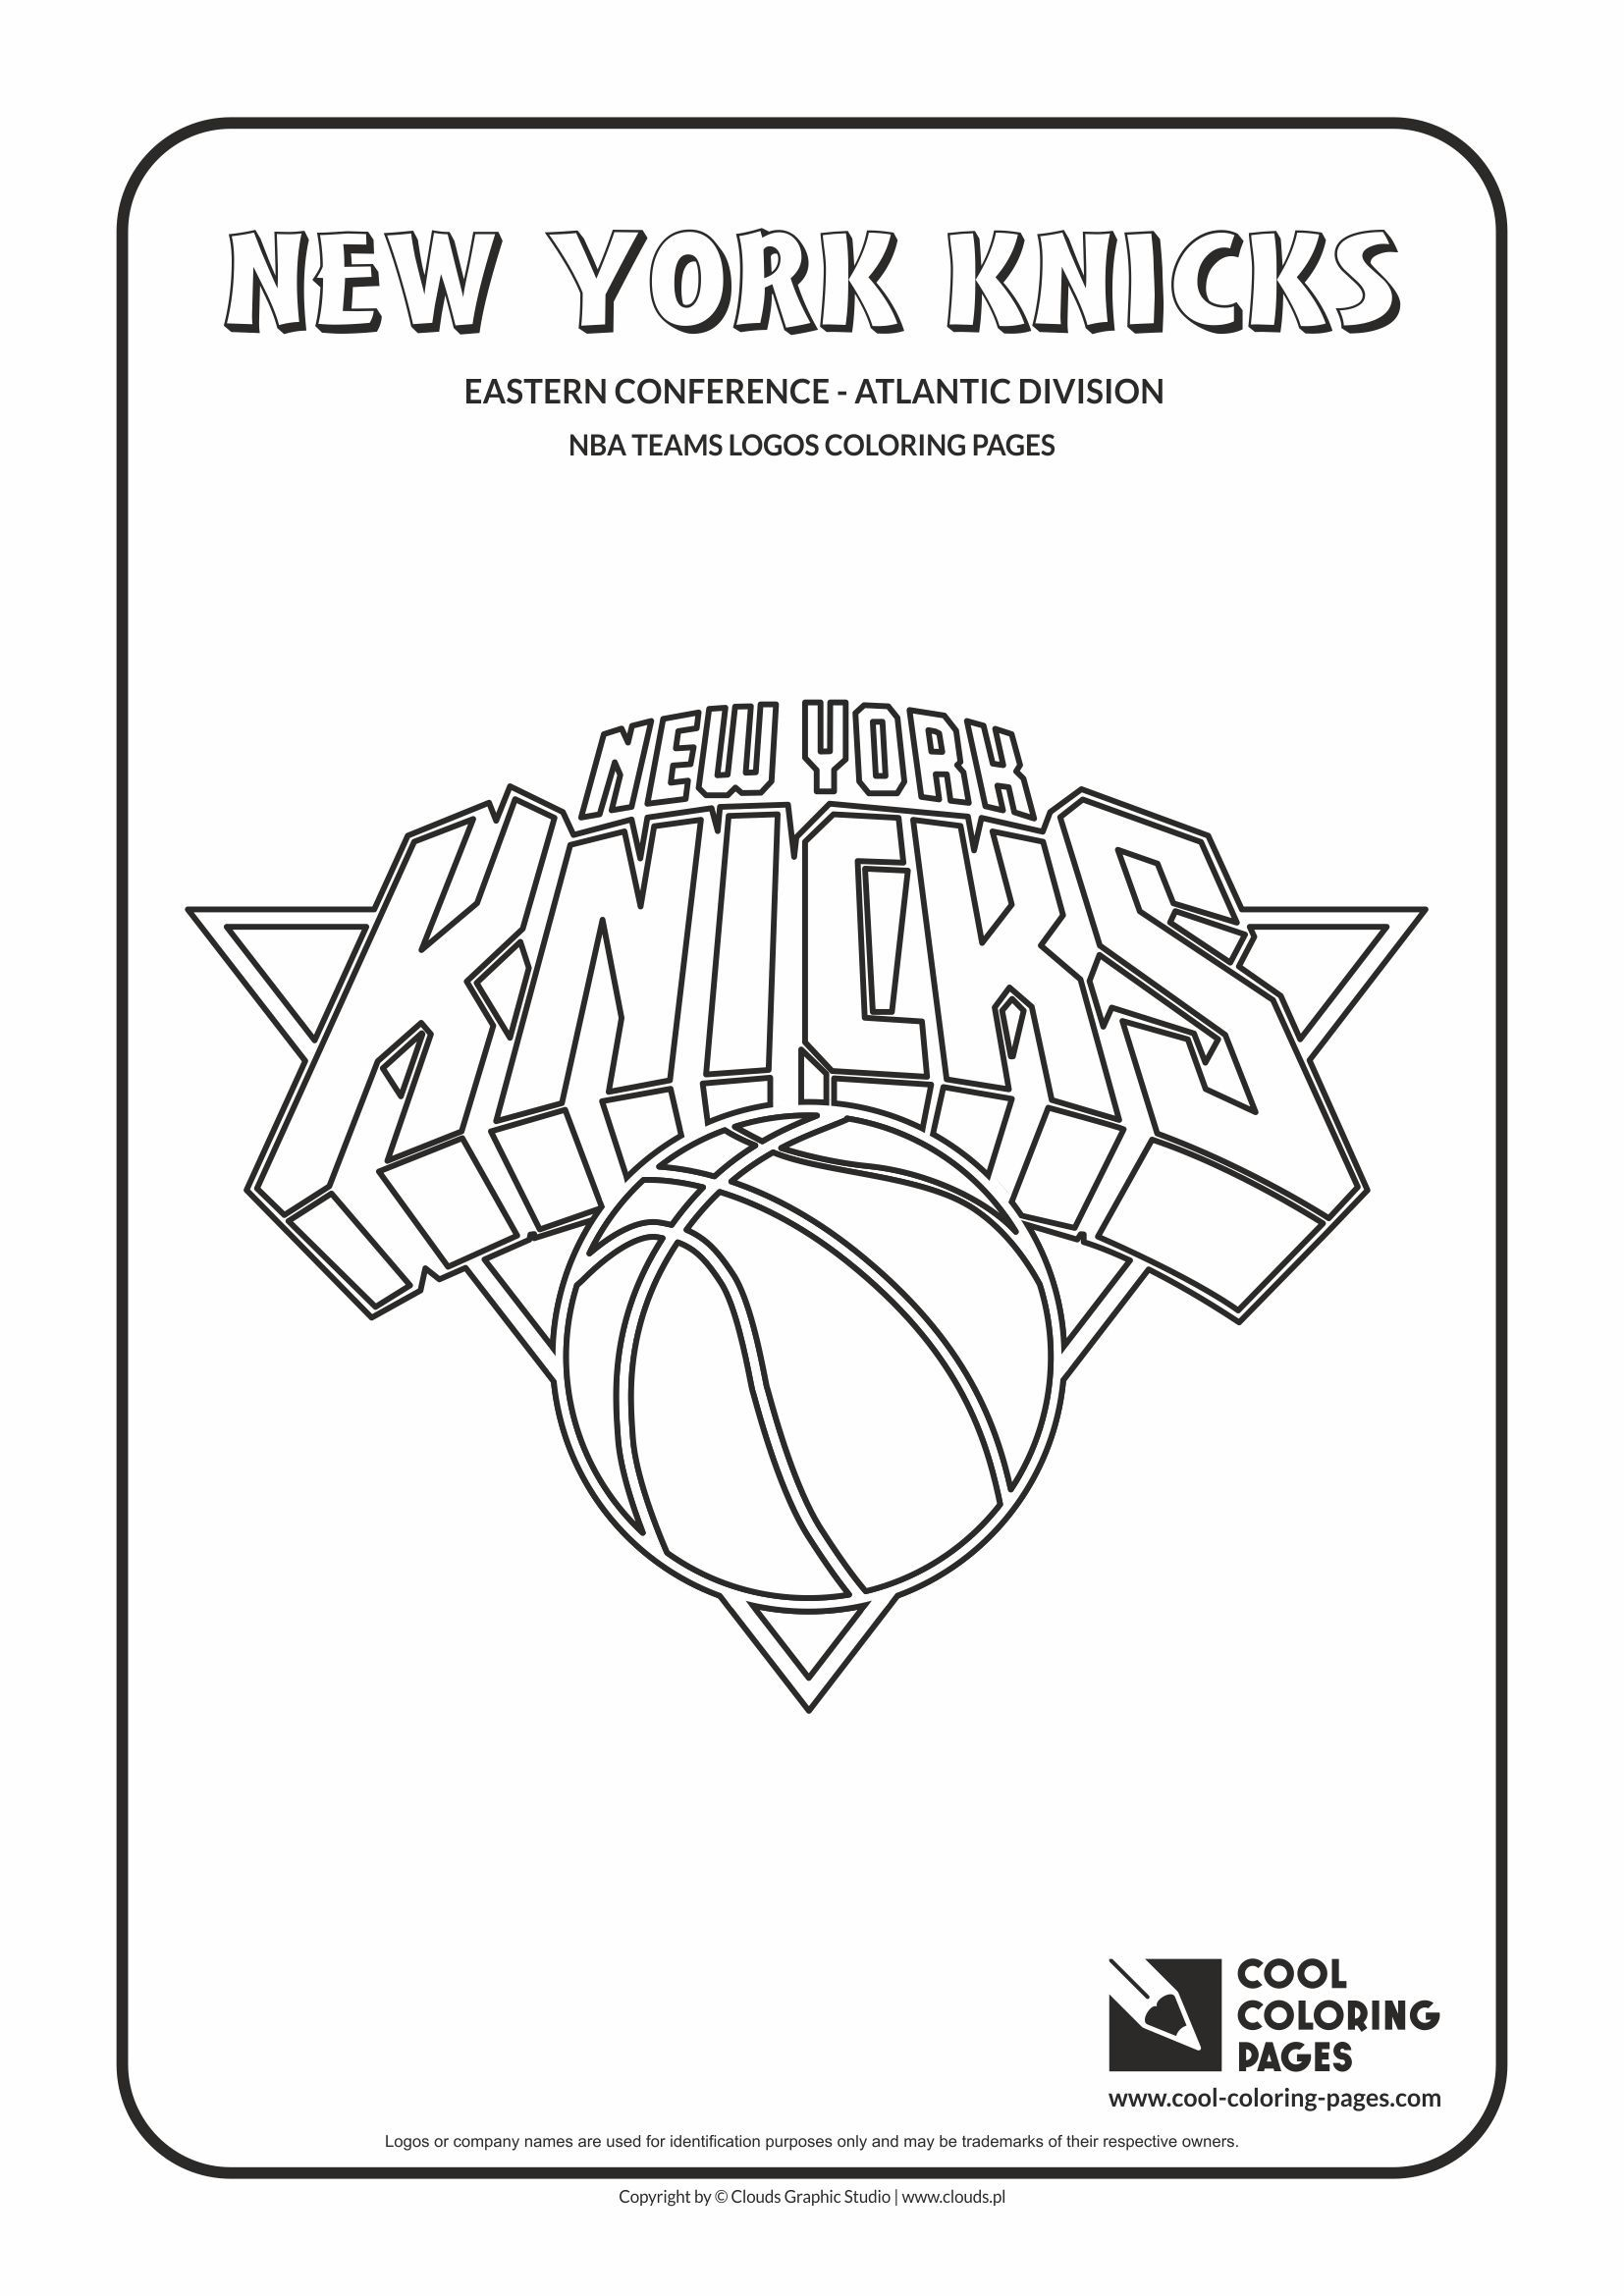 cool coloring pages nba teams logos new york knicks logo coloring page